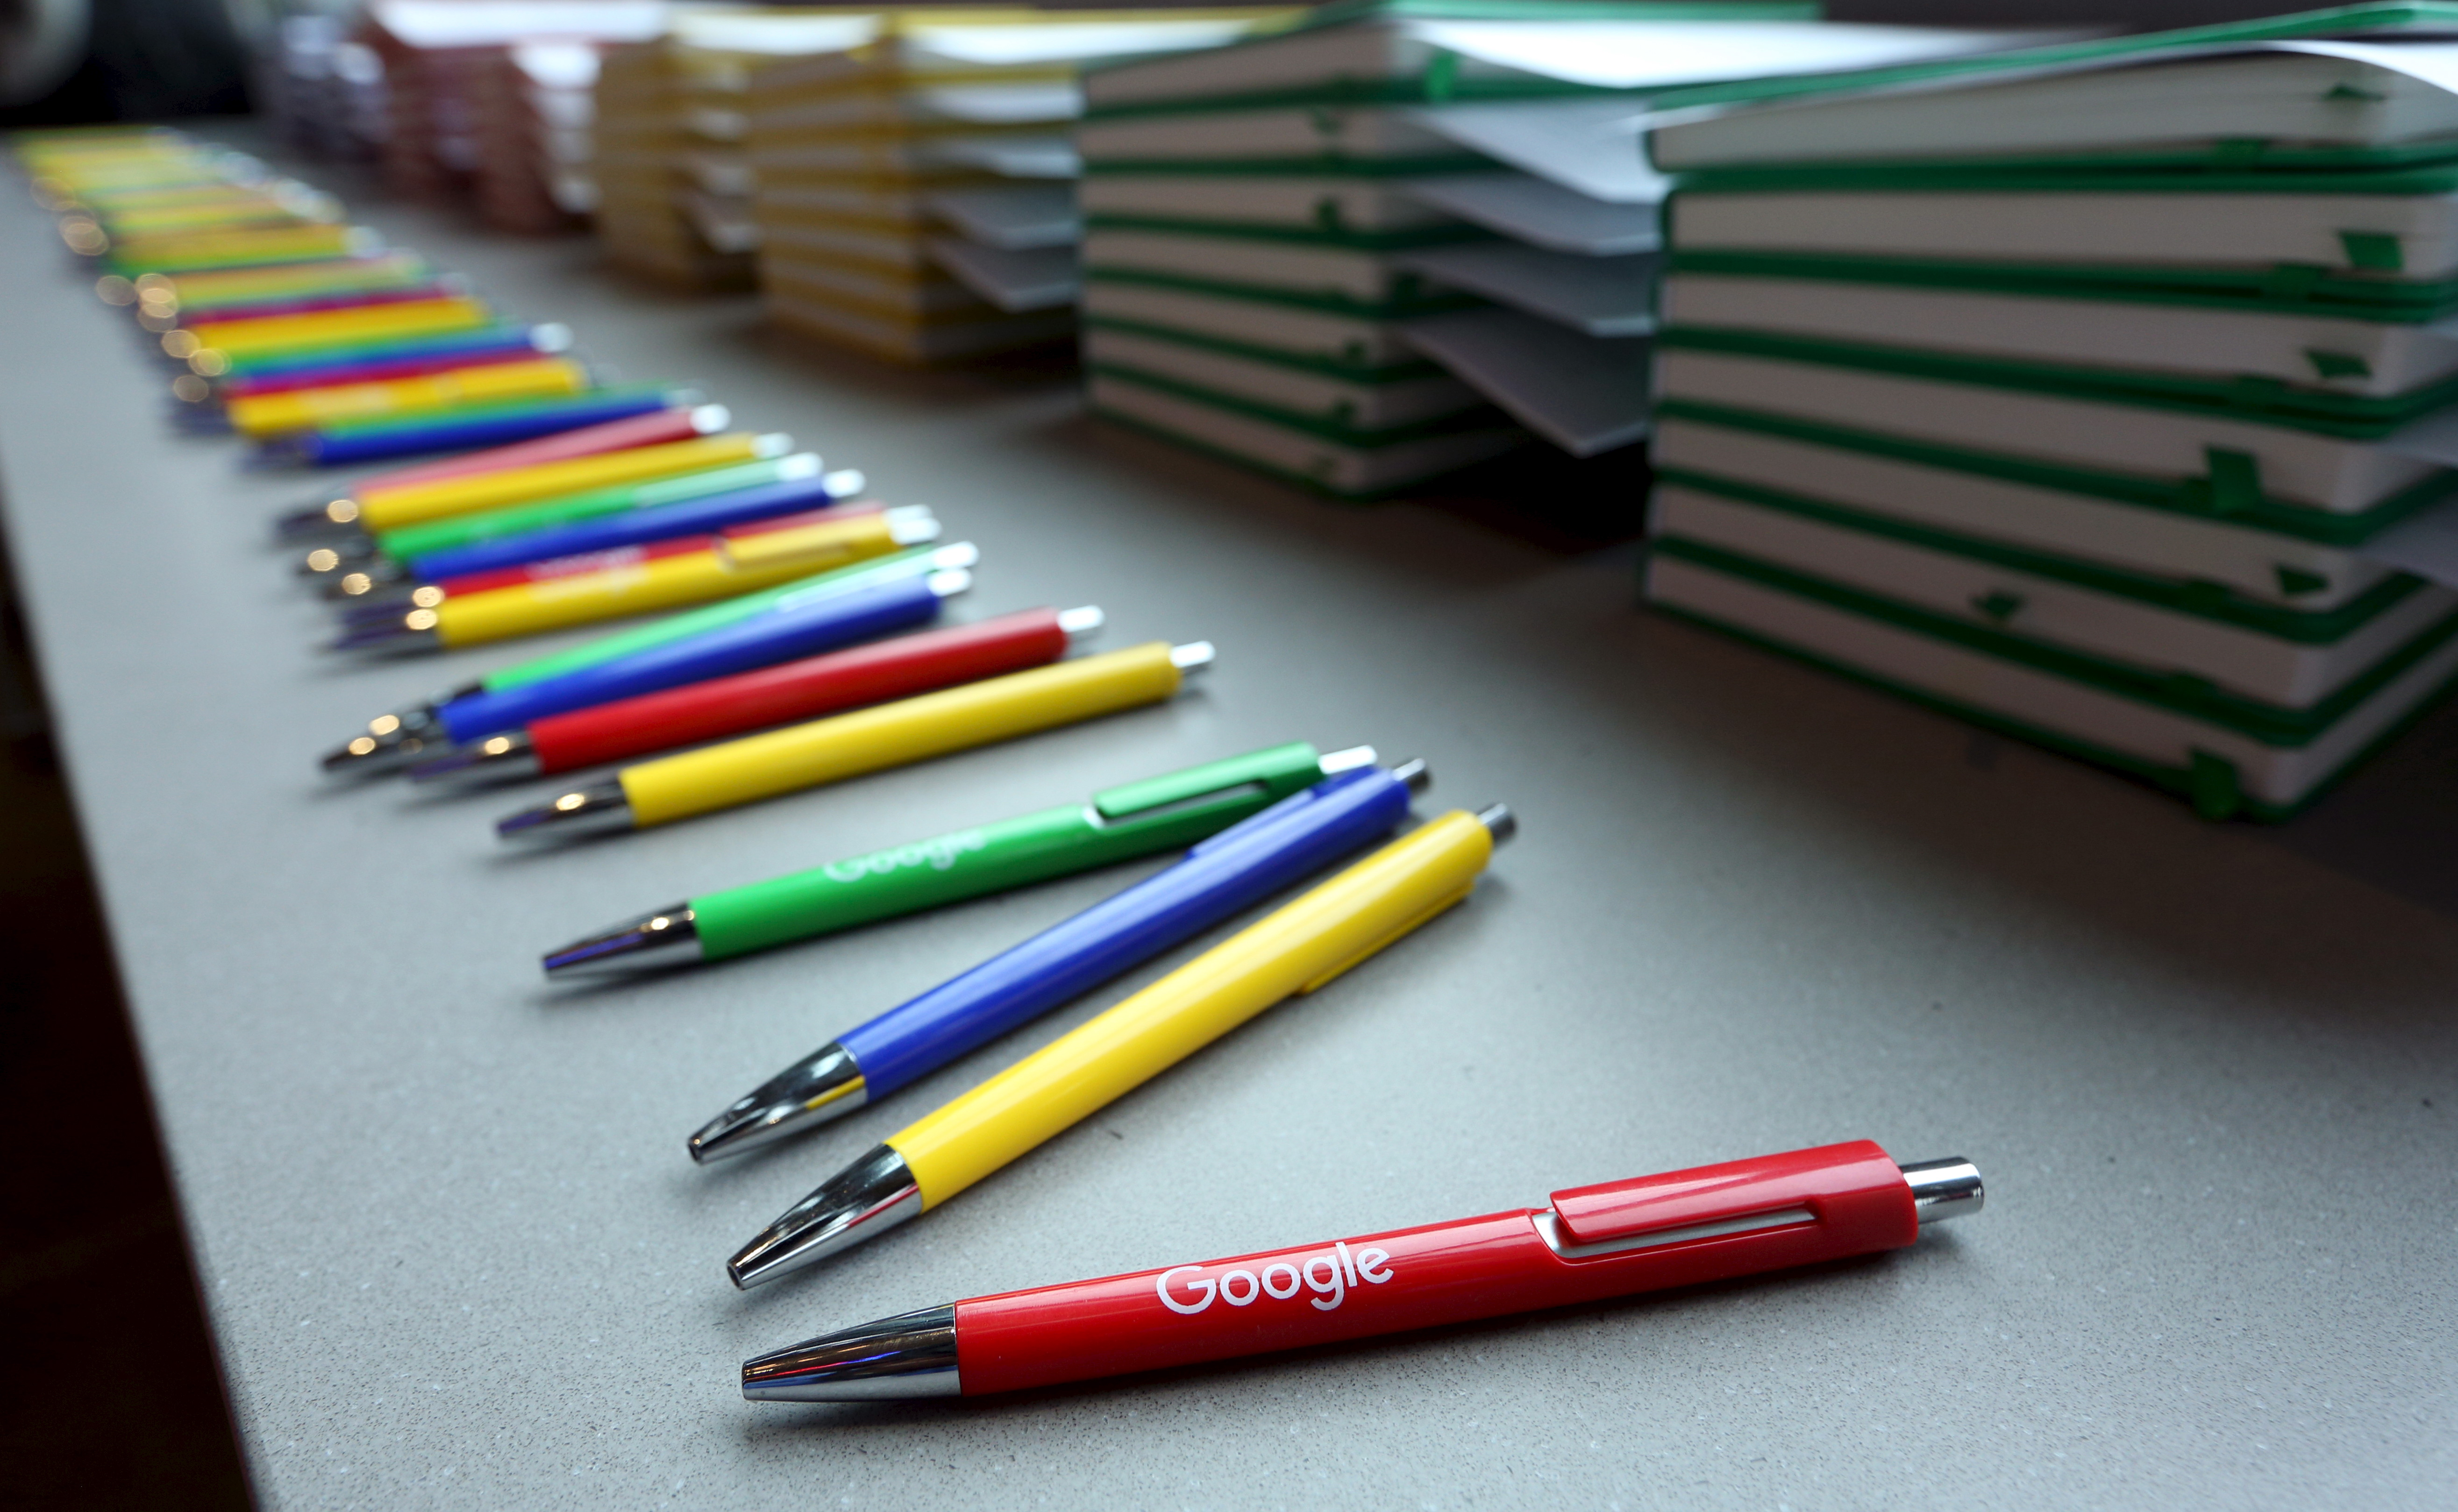 Pens and notebooks in Google's colors are prepared for the media before the unveiling of Google's new Canadian engineering headquarters in Kitchener-Waterloo, Ontario January 14, 2016. REUTERS/Peter Power - RTX22G09